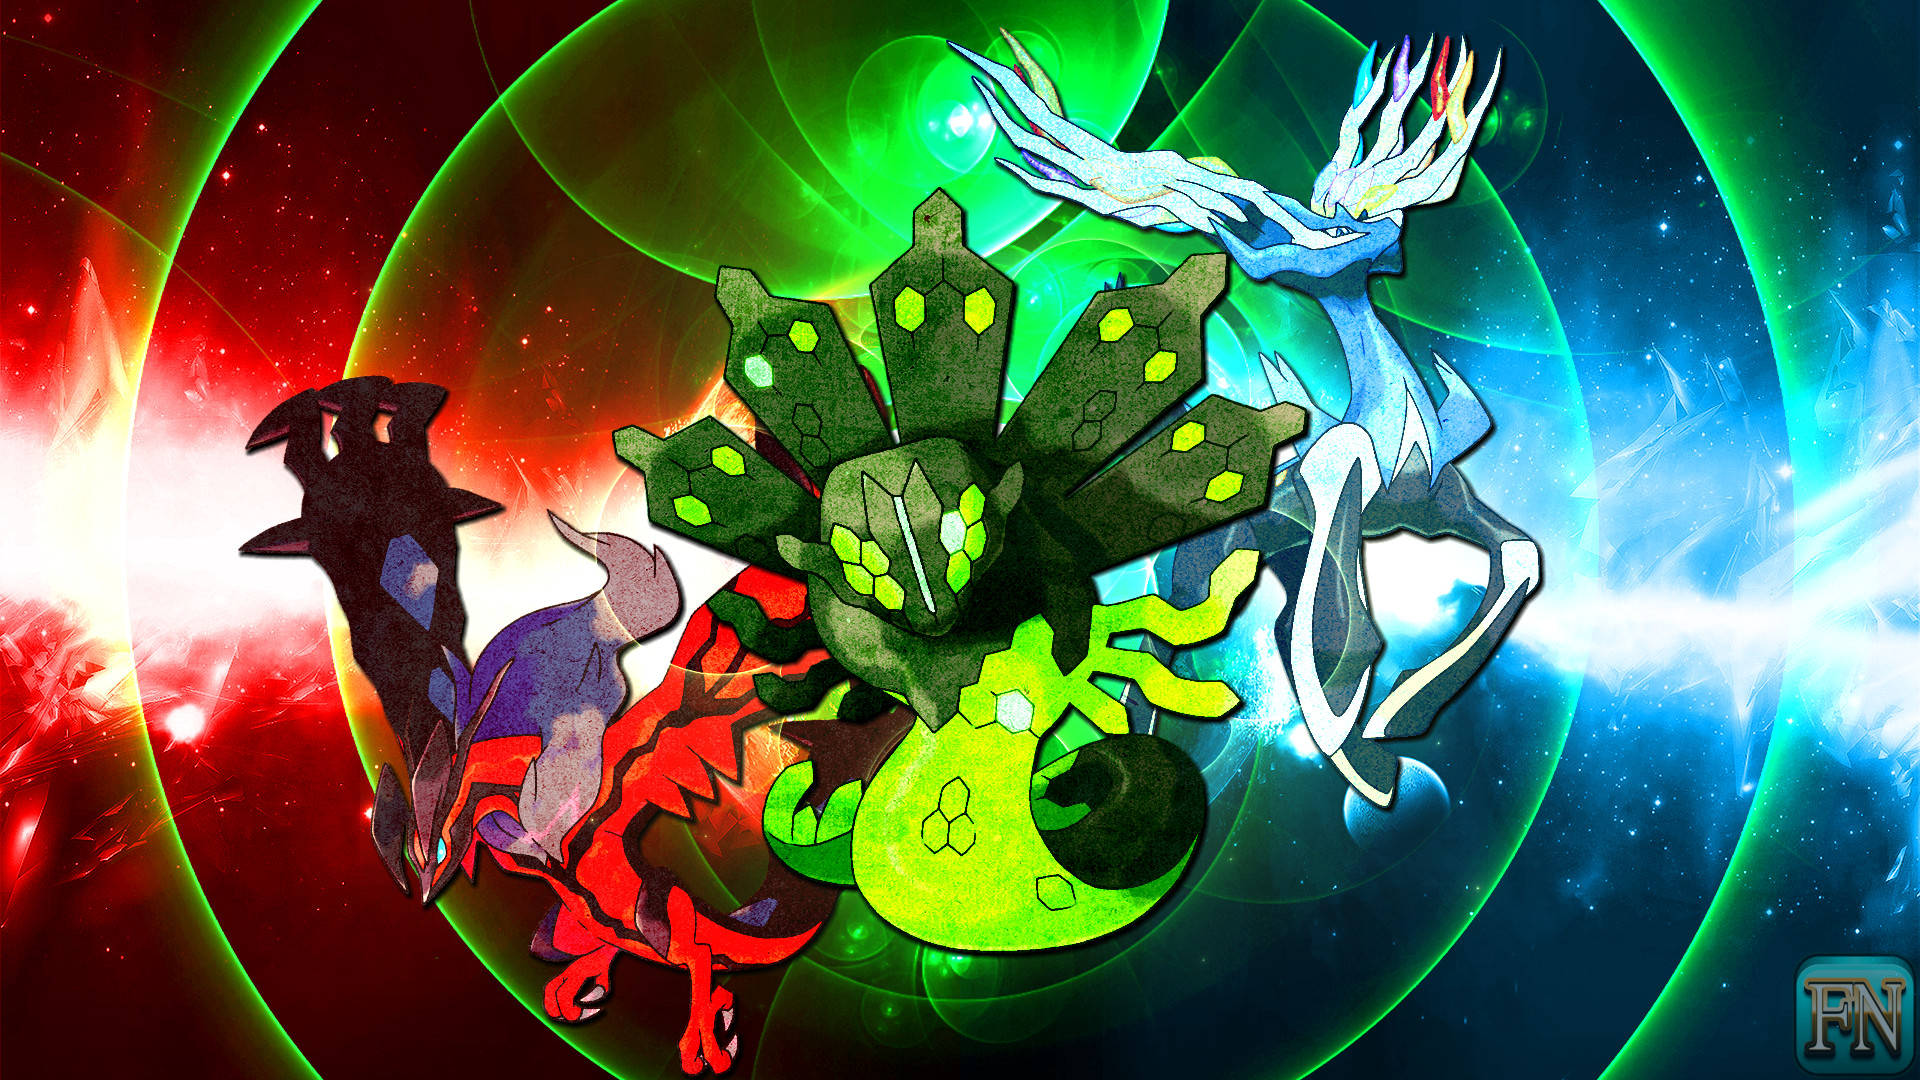 Res: 1920x1080, ... Pokemon Wallpaper: Xerneas Yveltal and Zygarde by FRUITYNITE